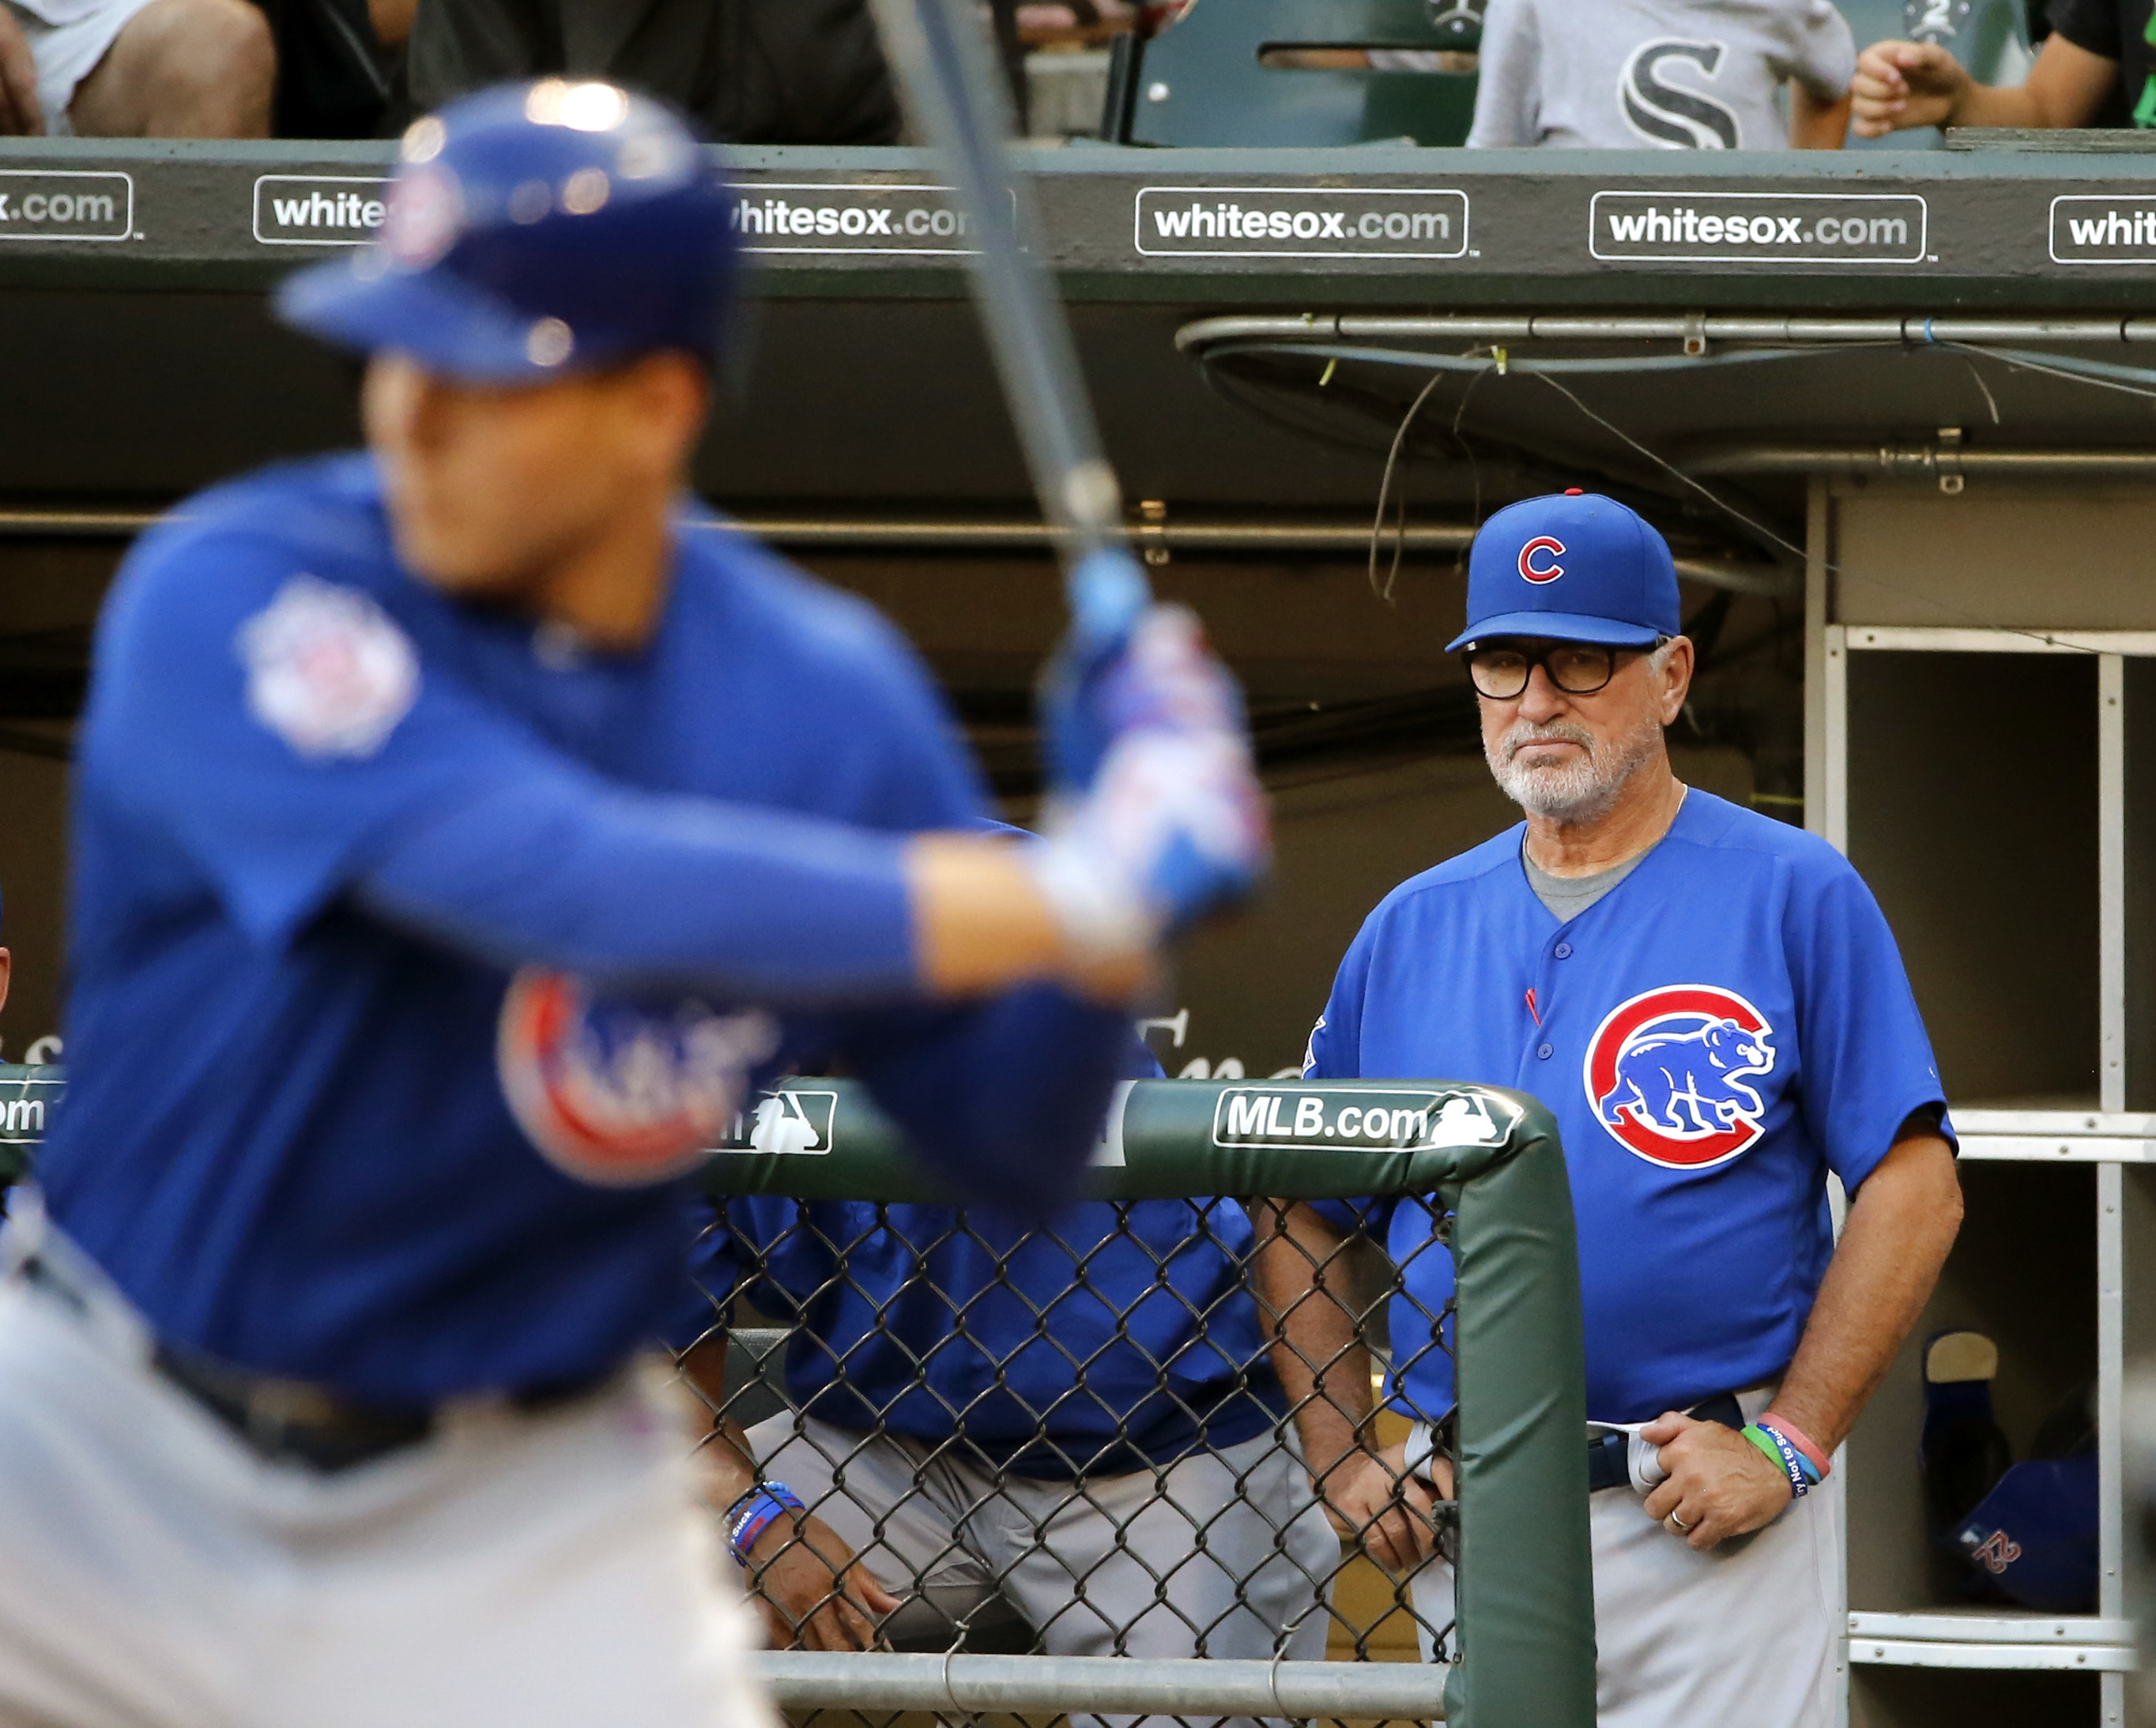 Chicago Cubs manager Joe Maddon, right, watches Anthony Rizzo at bat during the first inning of a baseball game against the Chicago White Sox Monday, July 25, 2016, in Chicago. (AP Photo/Charles Rex Arbogast)